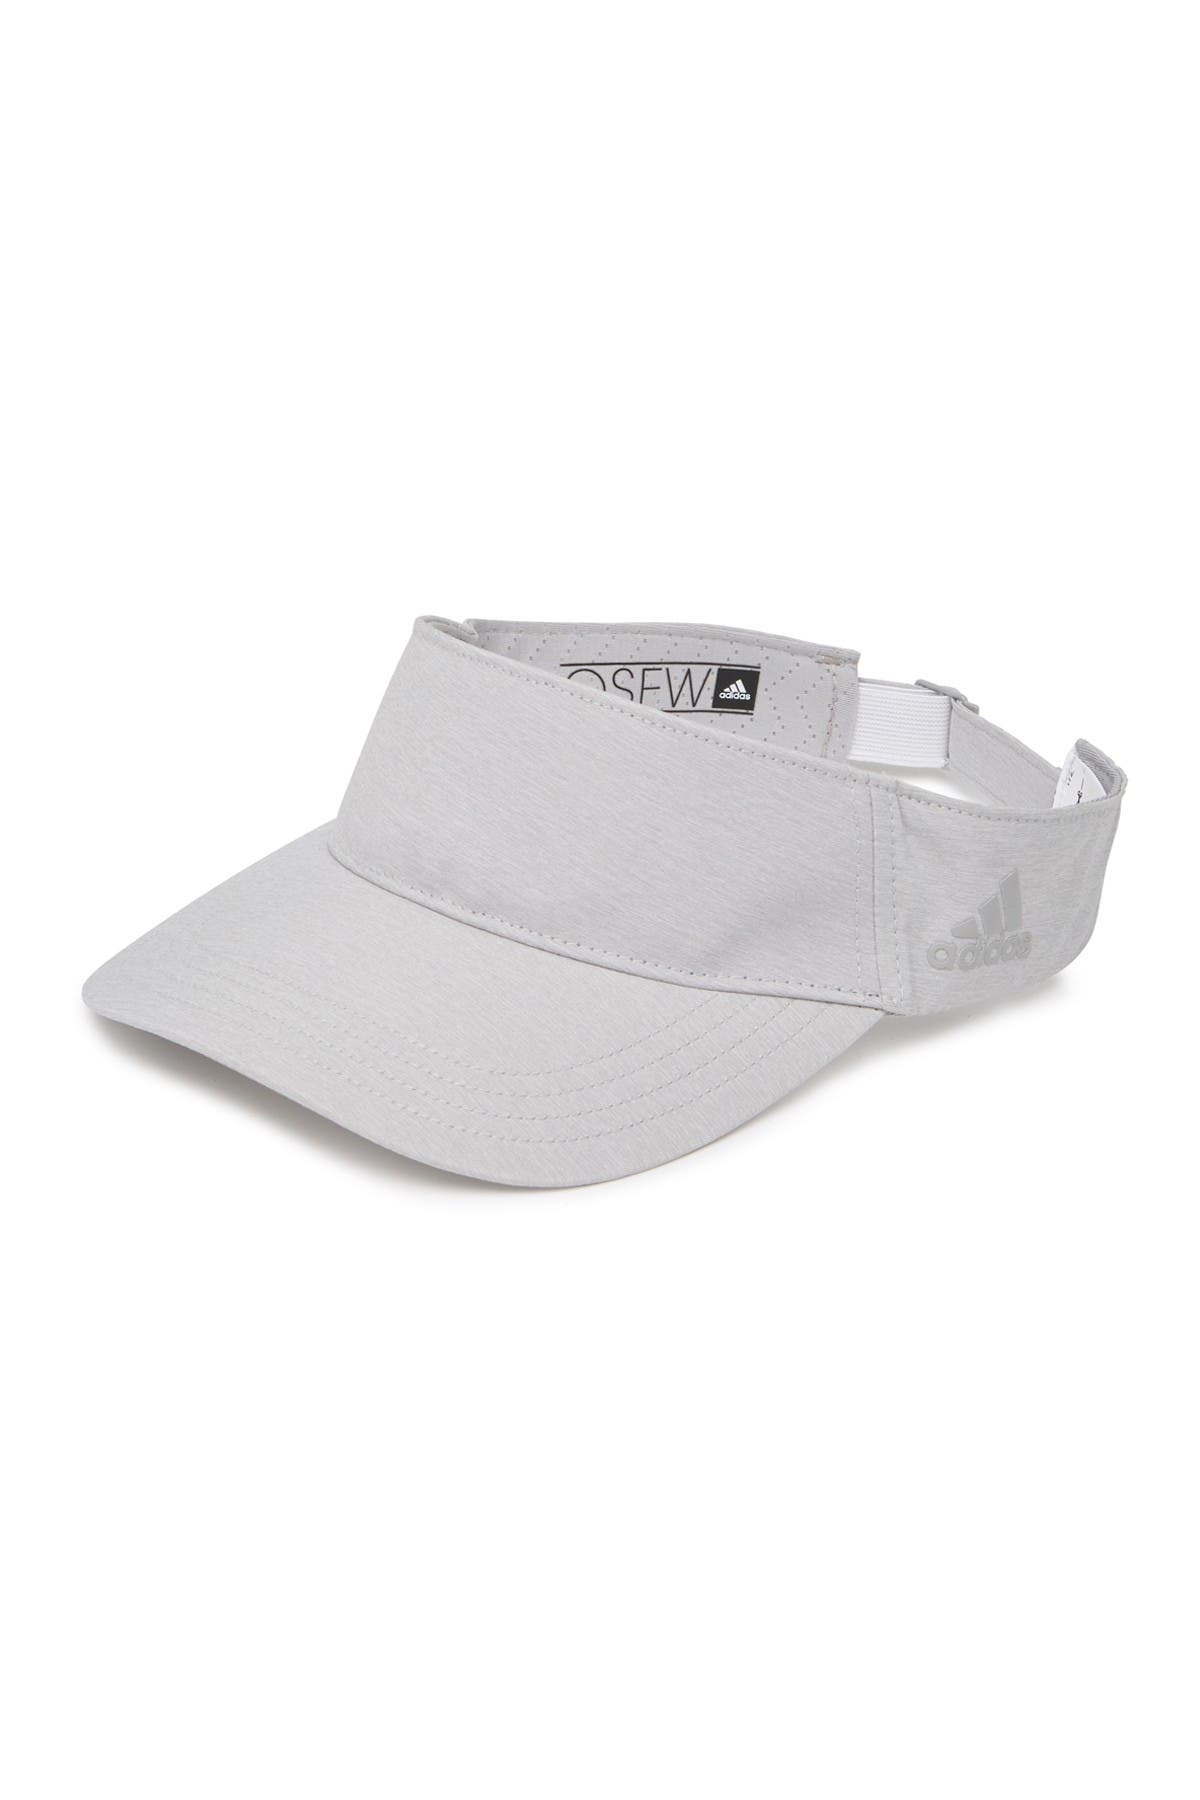 Image of Adidas Golf Crestable Heathered Visor